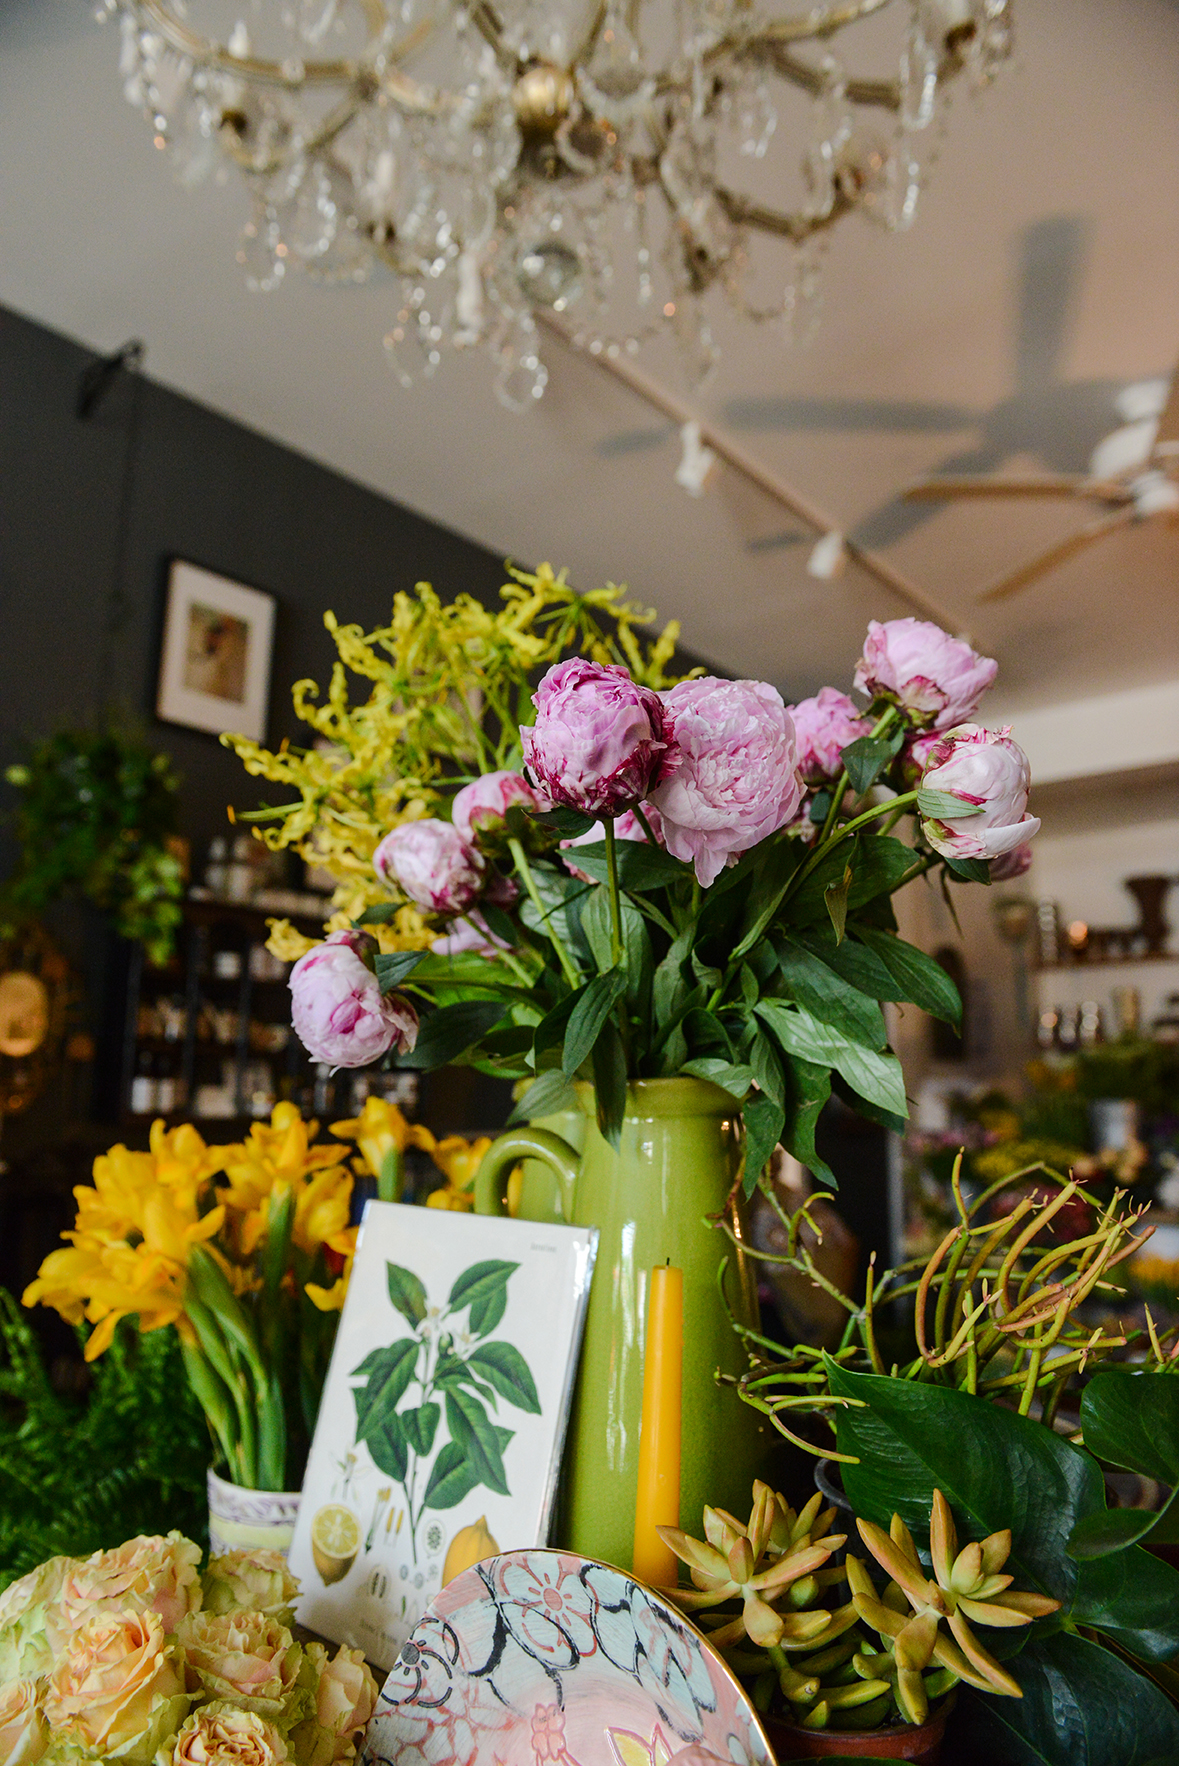 The Farmer's Daughter Flower Shop in Pittsburgh, PA via Design*Sponge